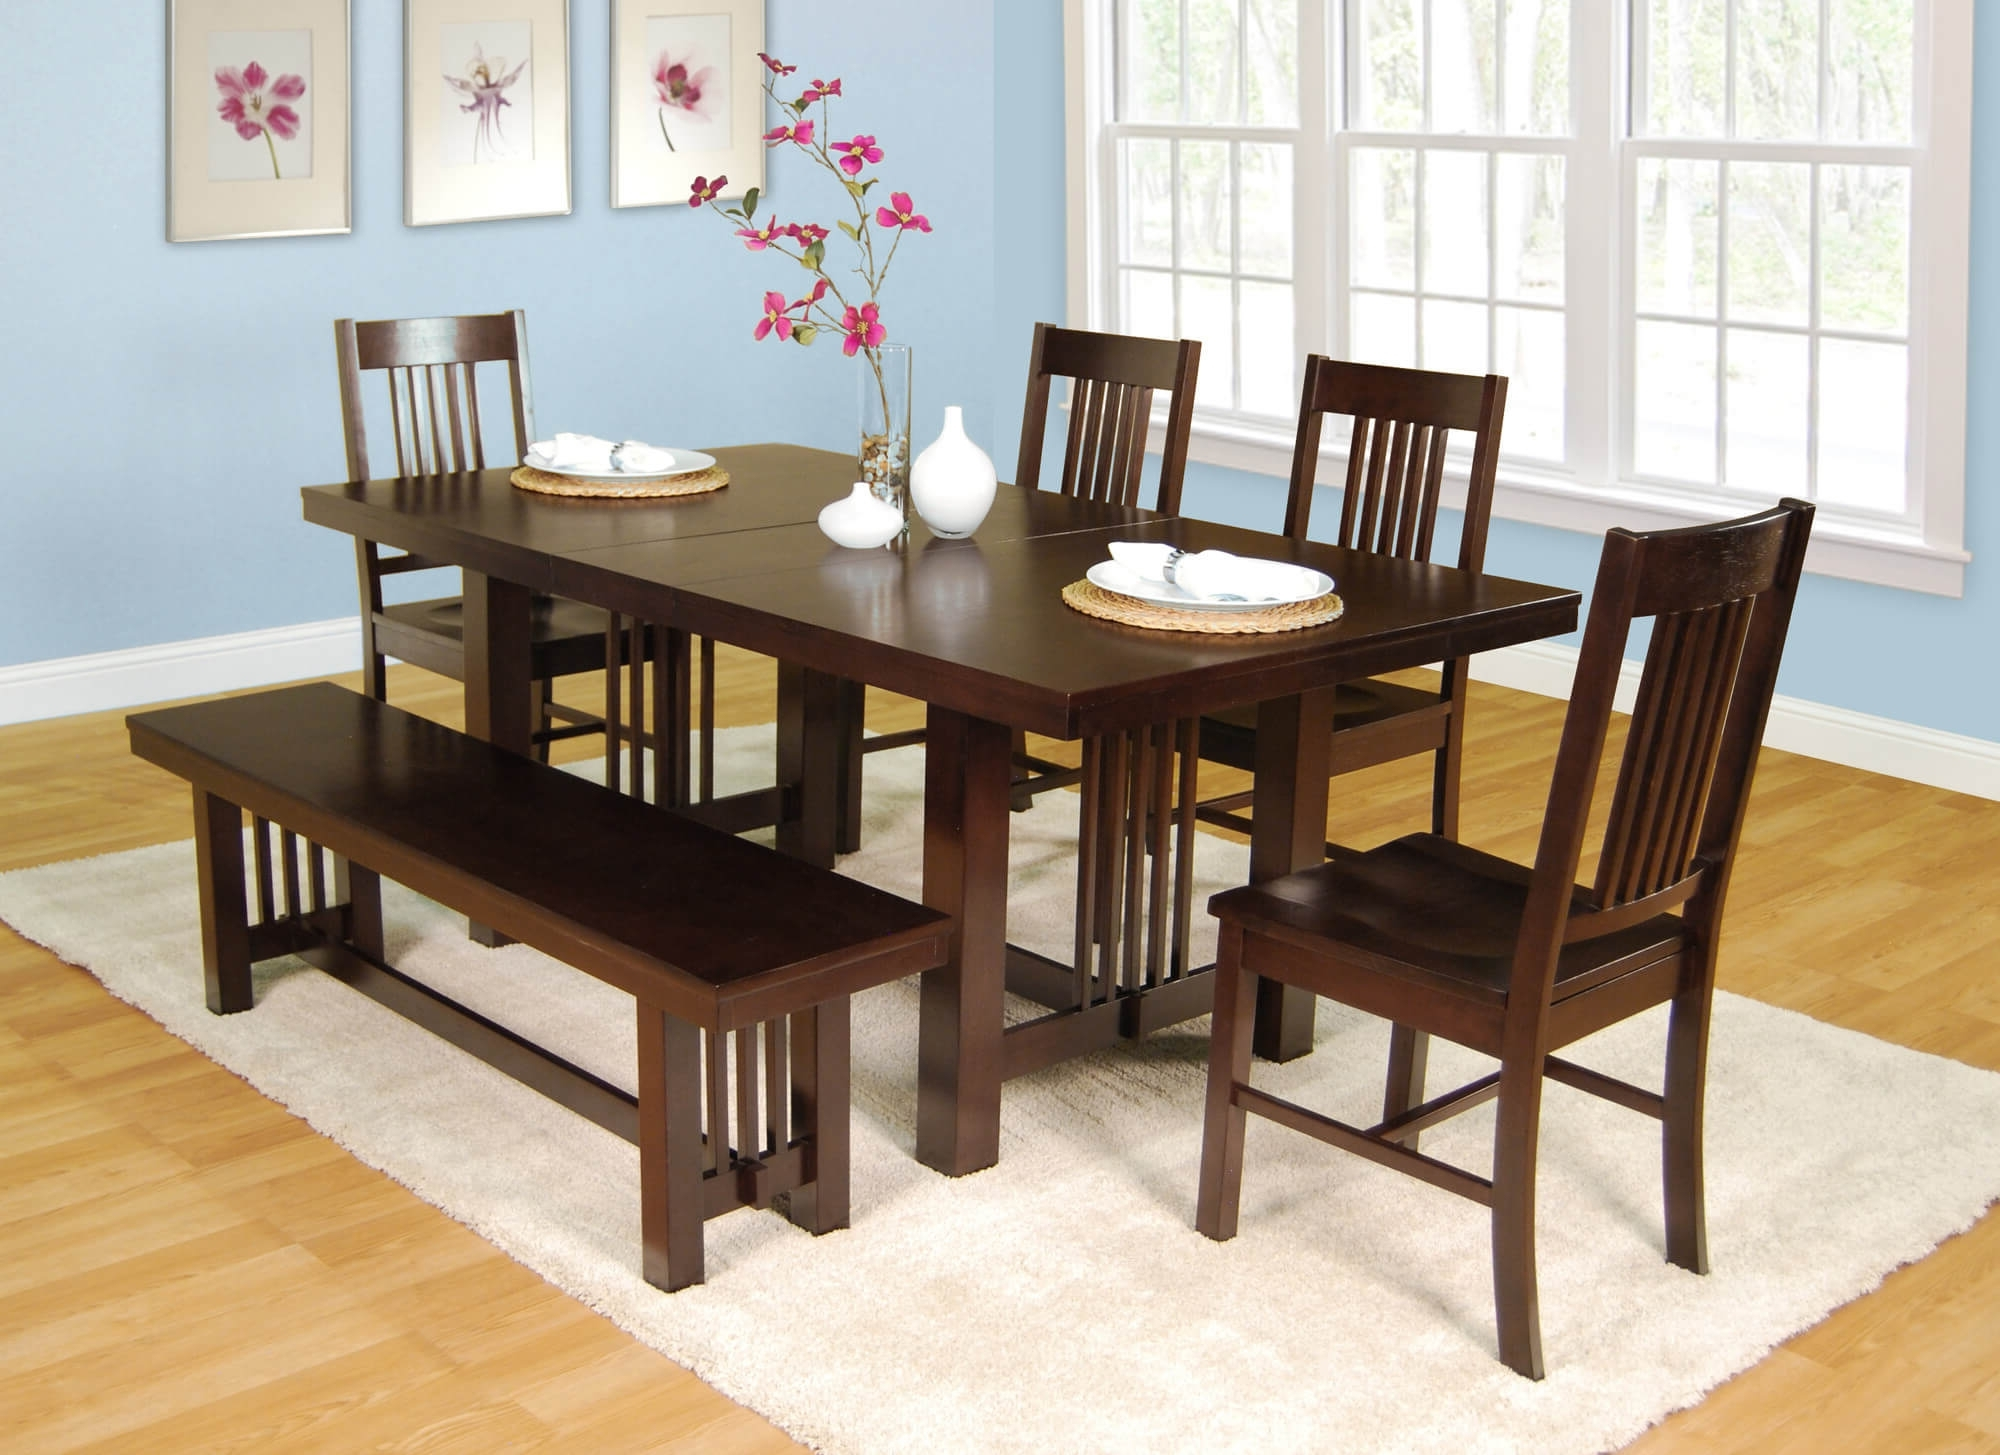 Widely Used 26 Dining Room Sets (Big And Small) With Bench Seating (2018) With Regard To Small Dining Tables And Bench Sets (View 6 of 25)